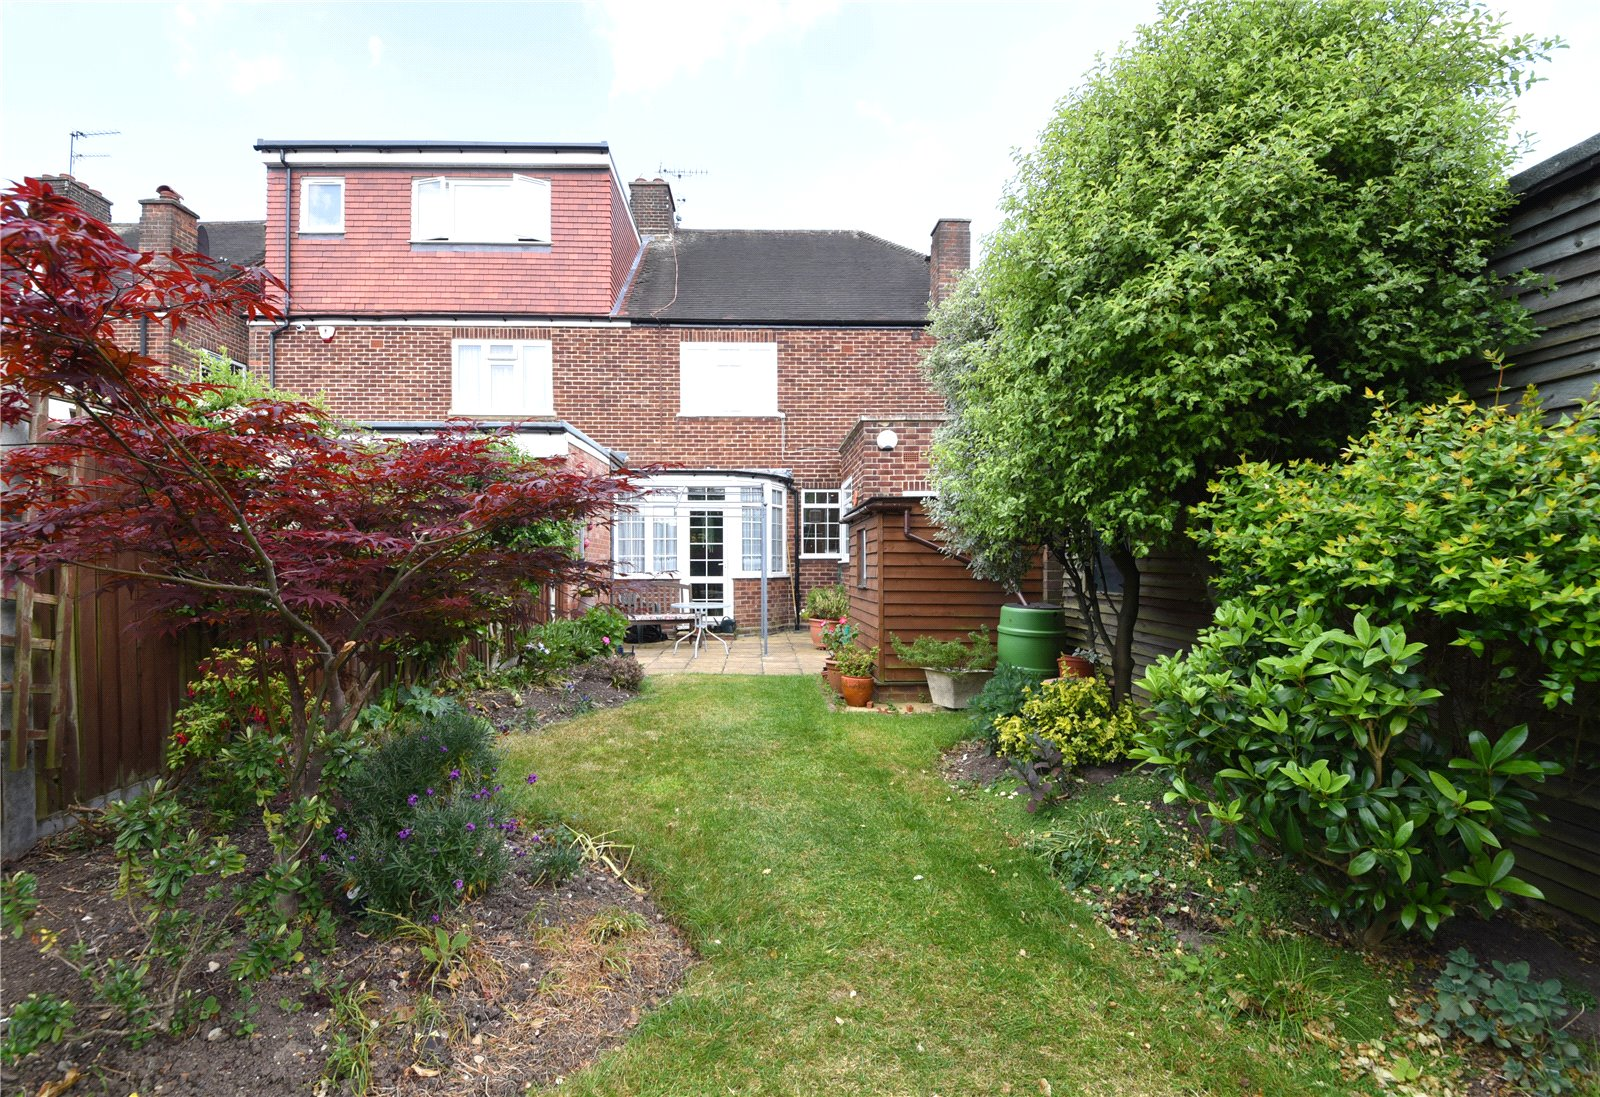 3 bed house for sale in Bramber Road, London 5